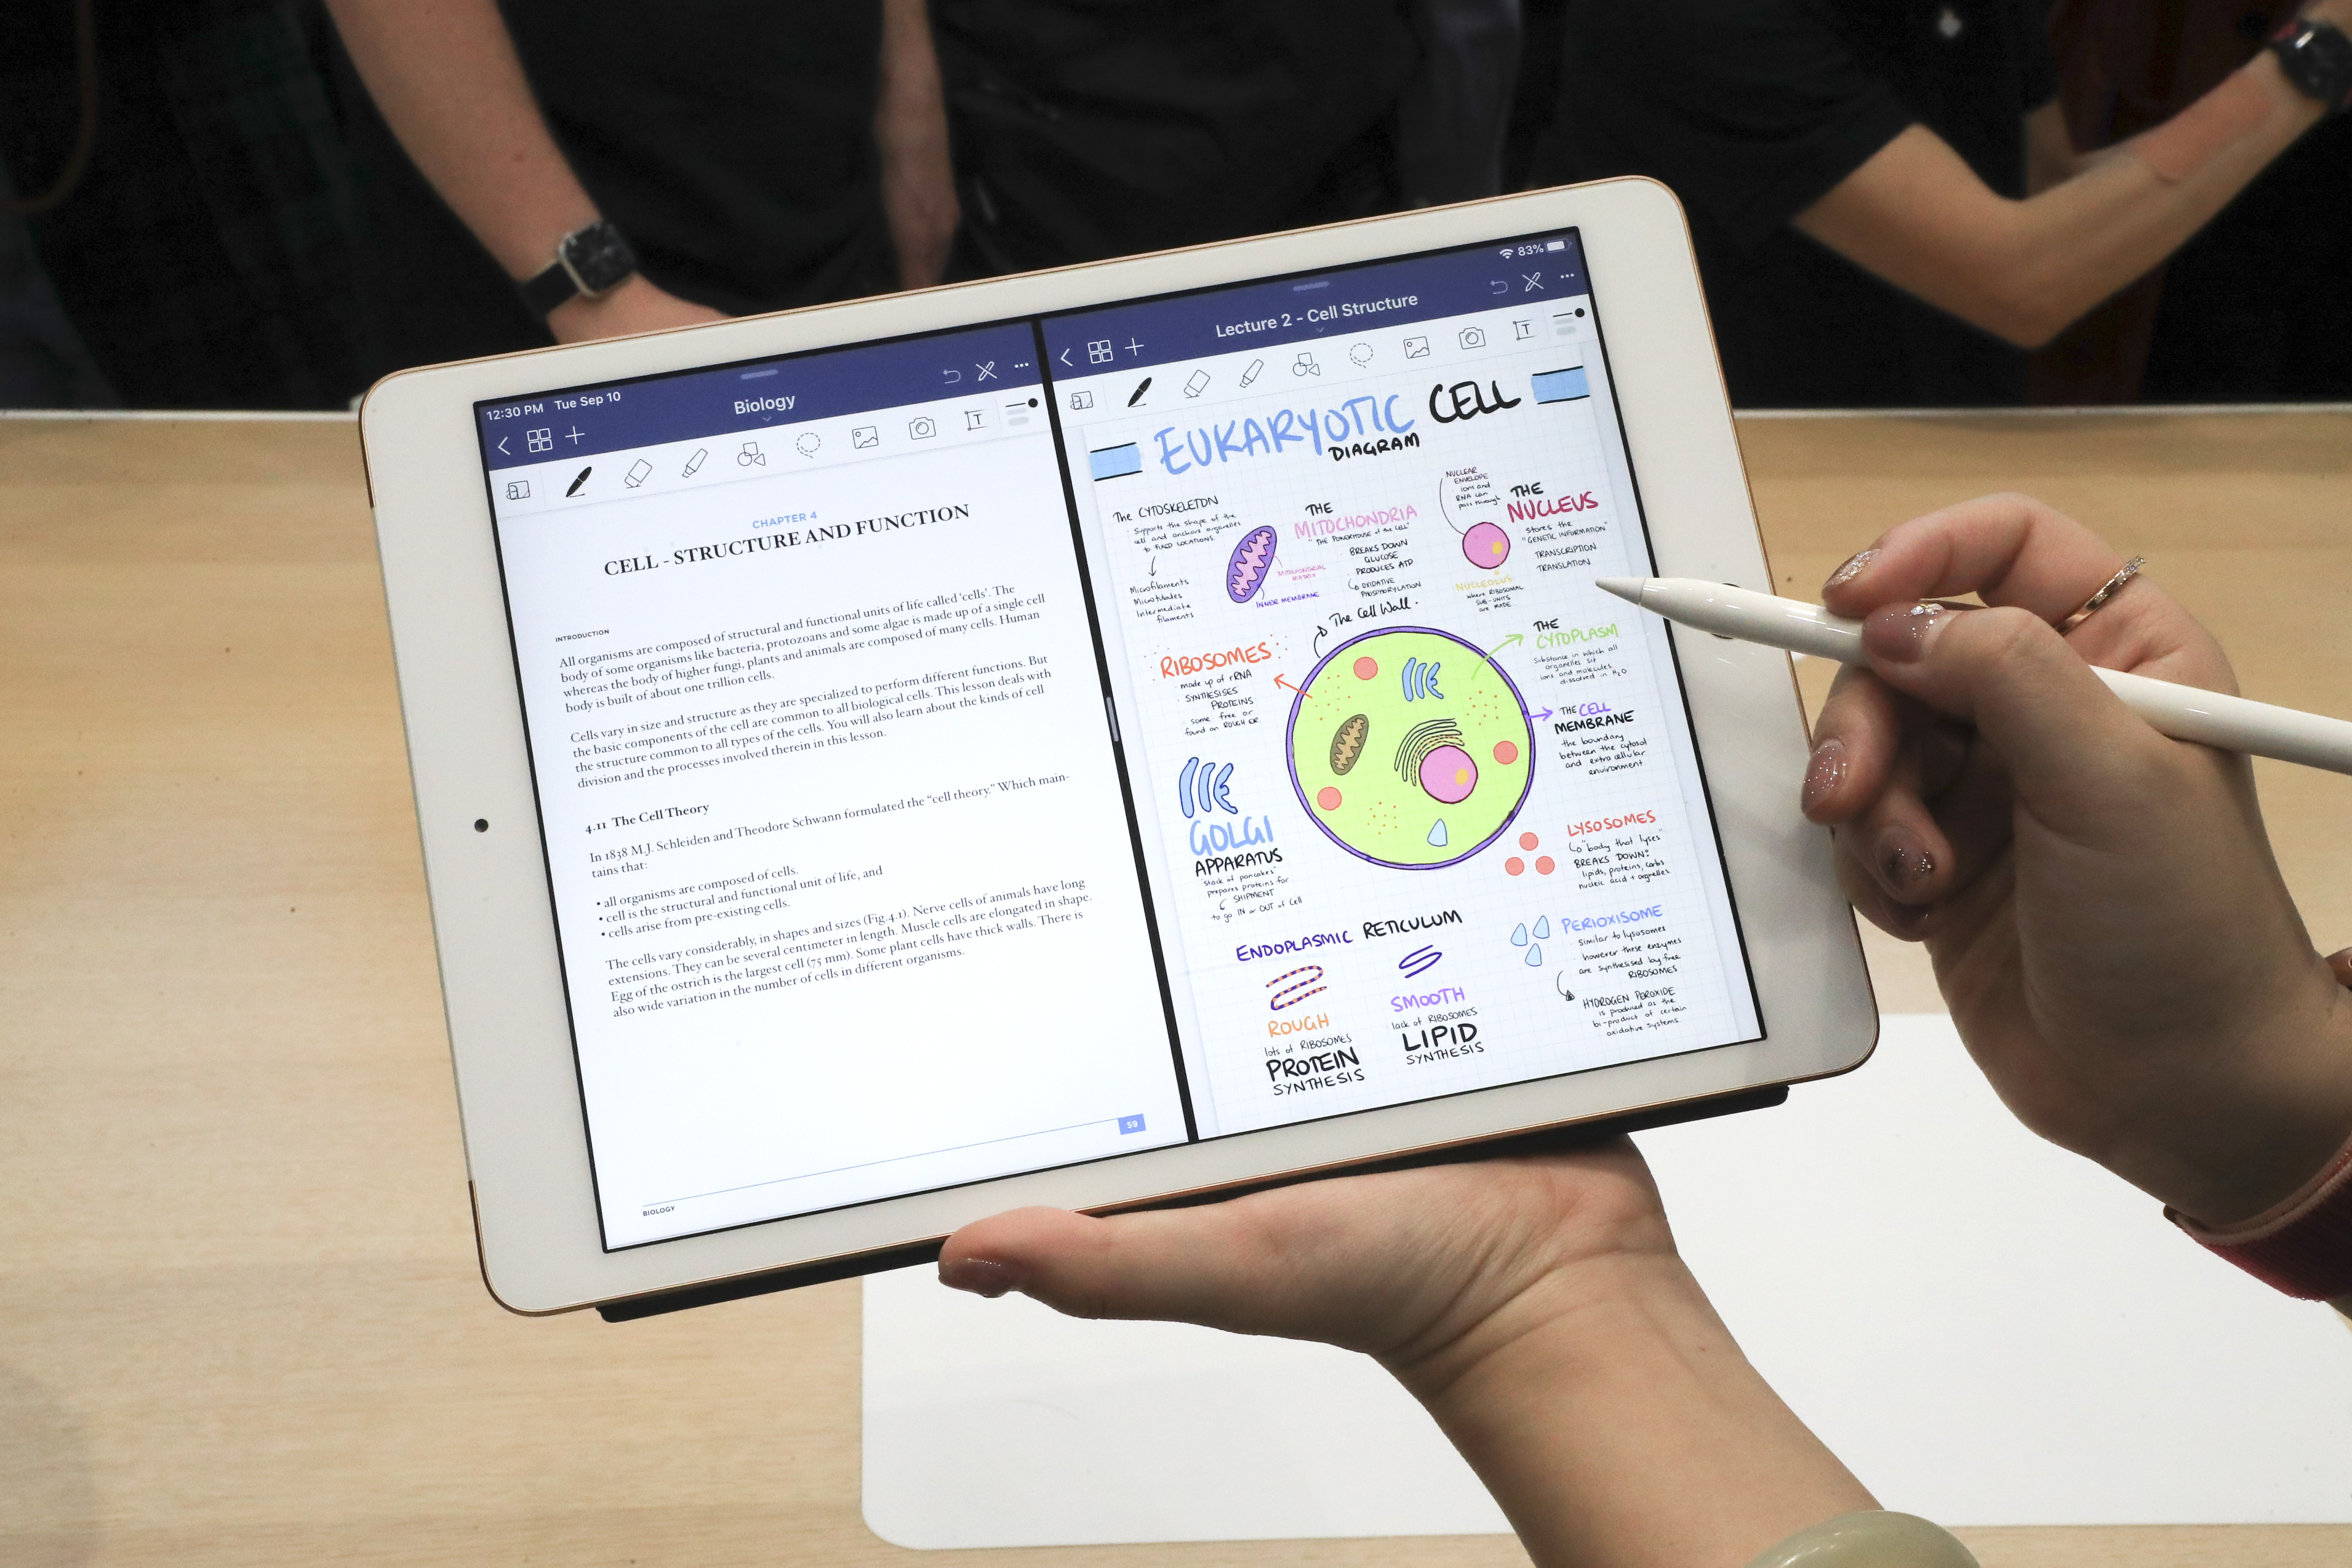 The new Apple iPad during the hands-on portion of Apple's annual product launch event in Cupertino.